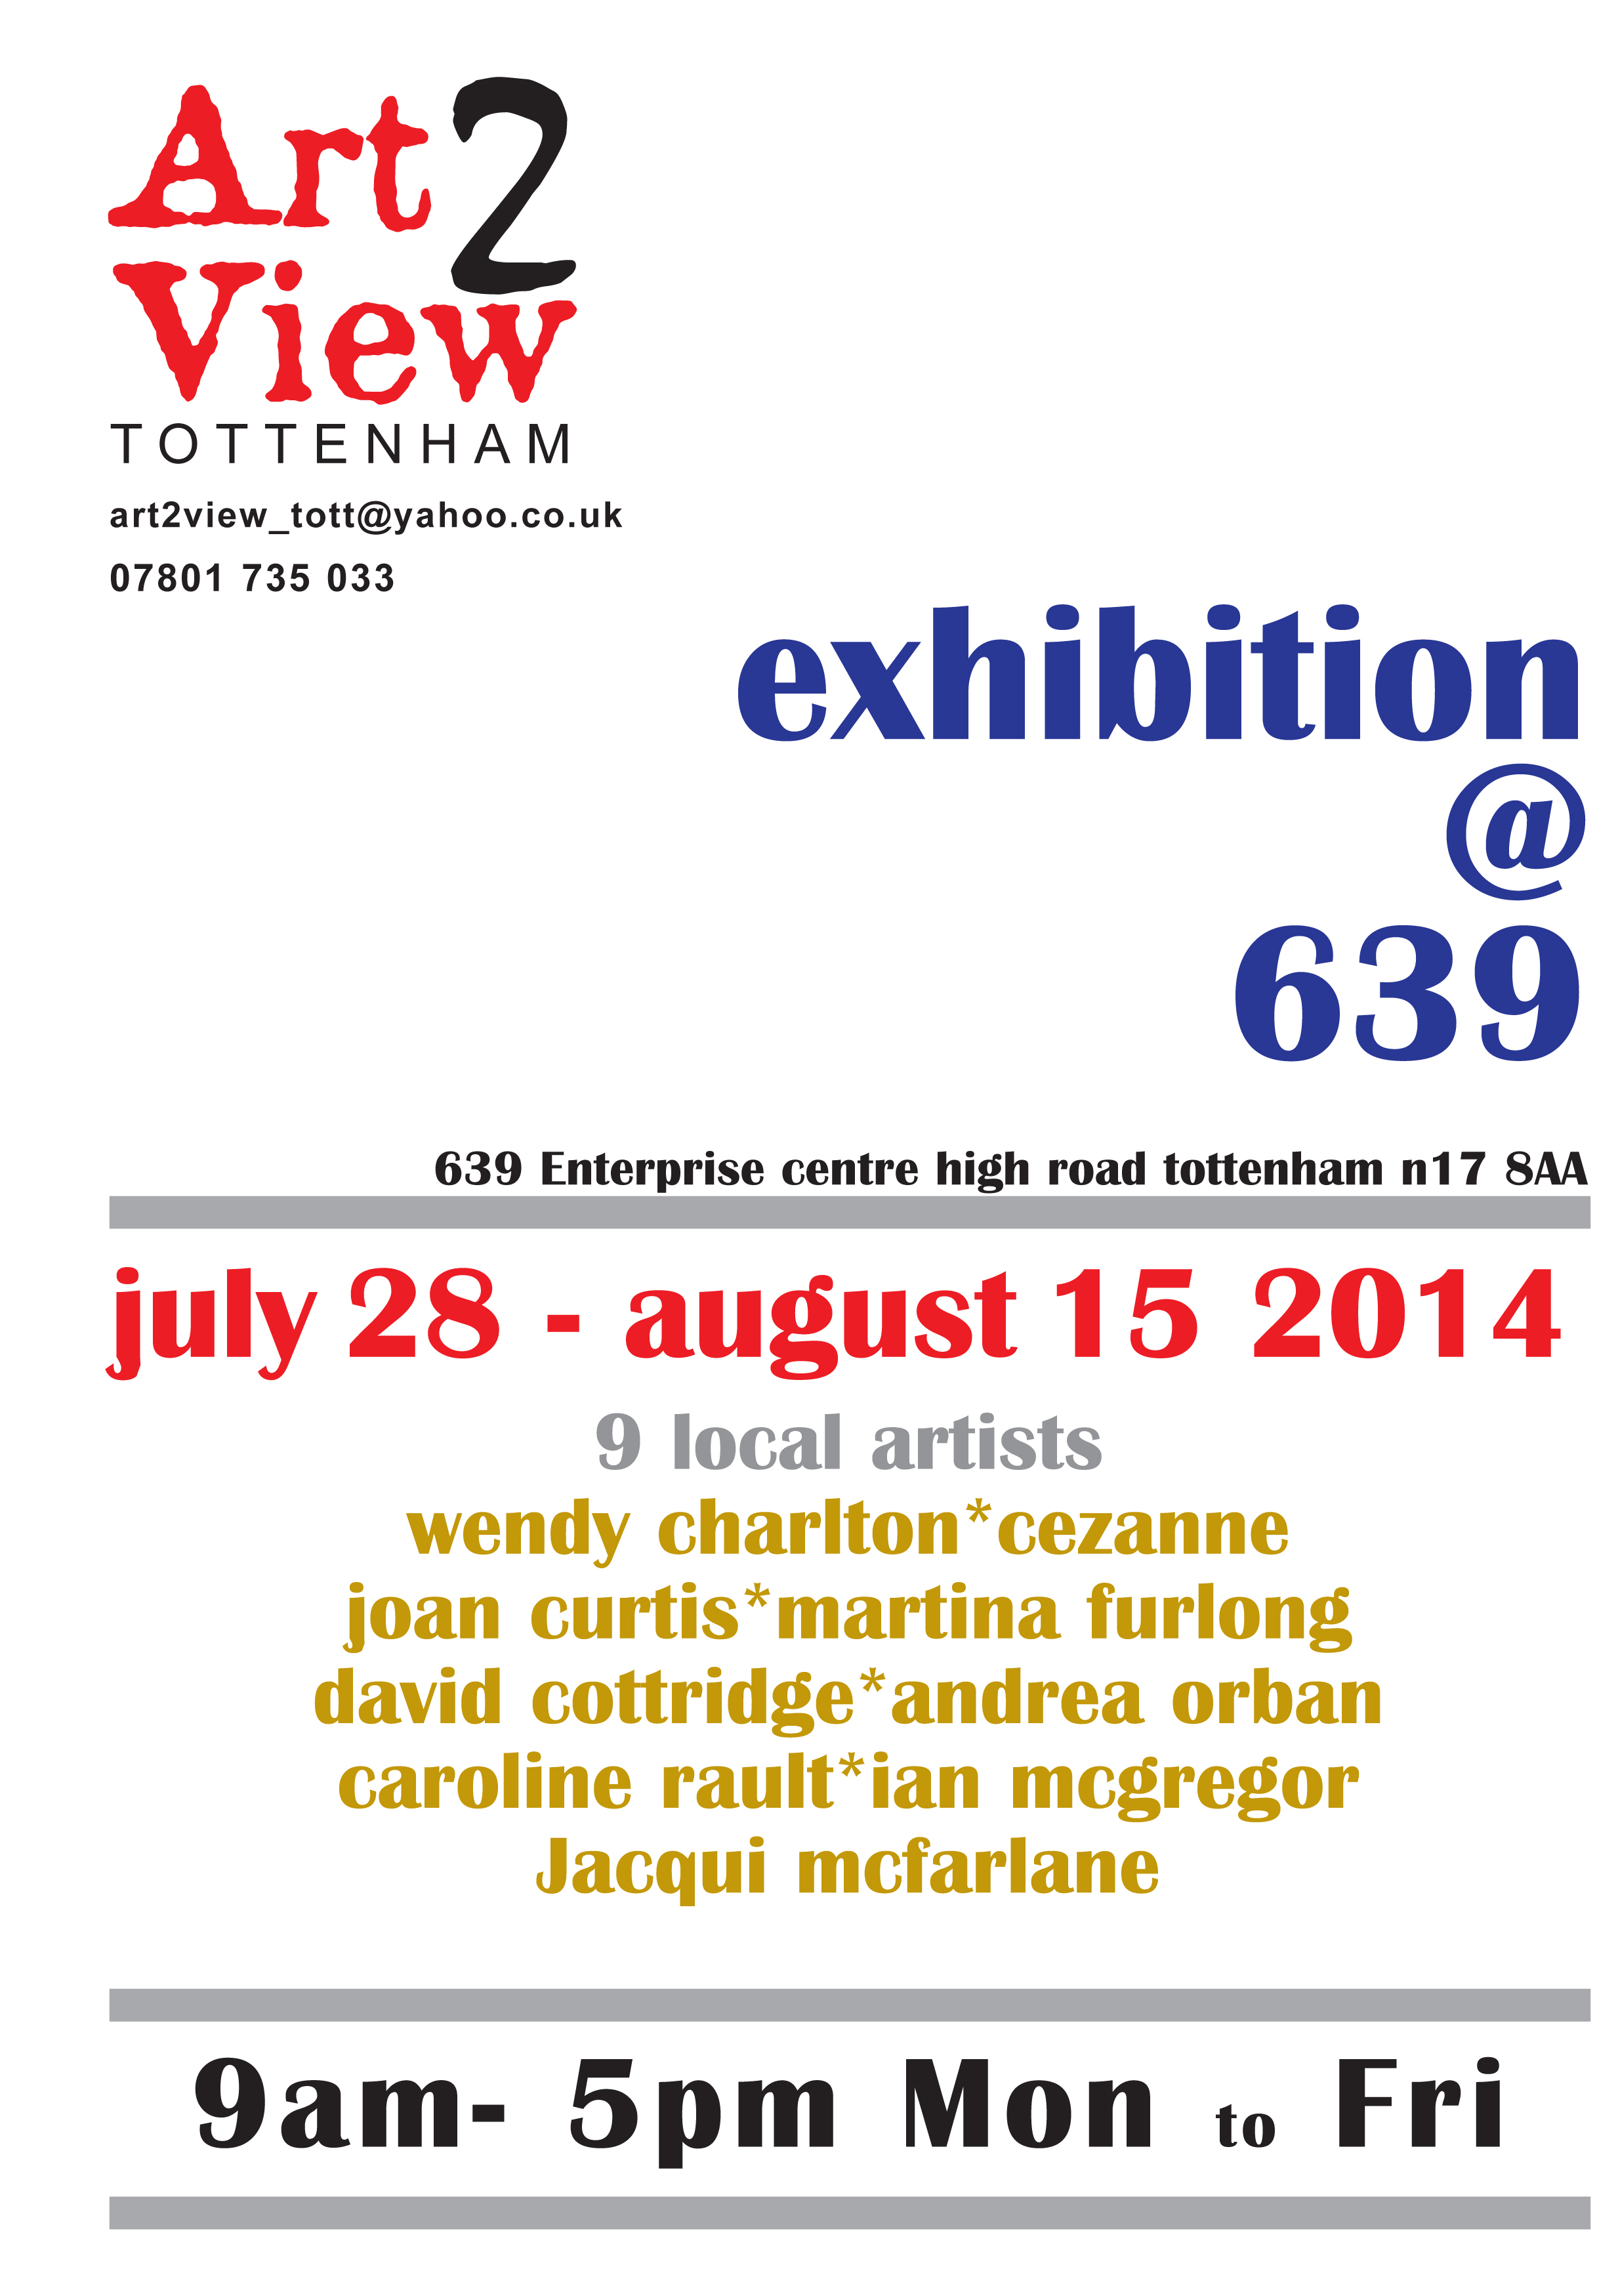 art2view Exhibition